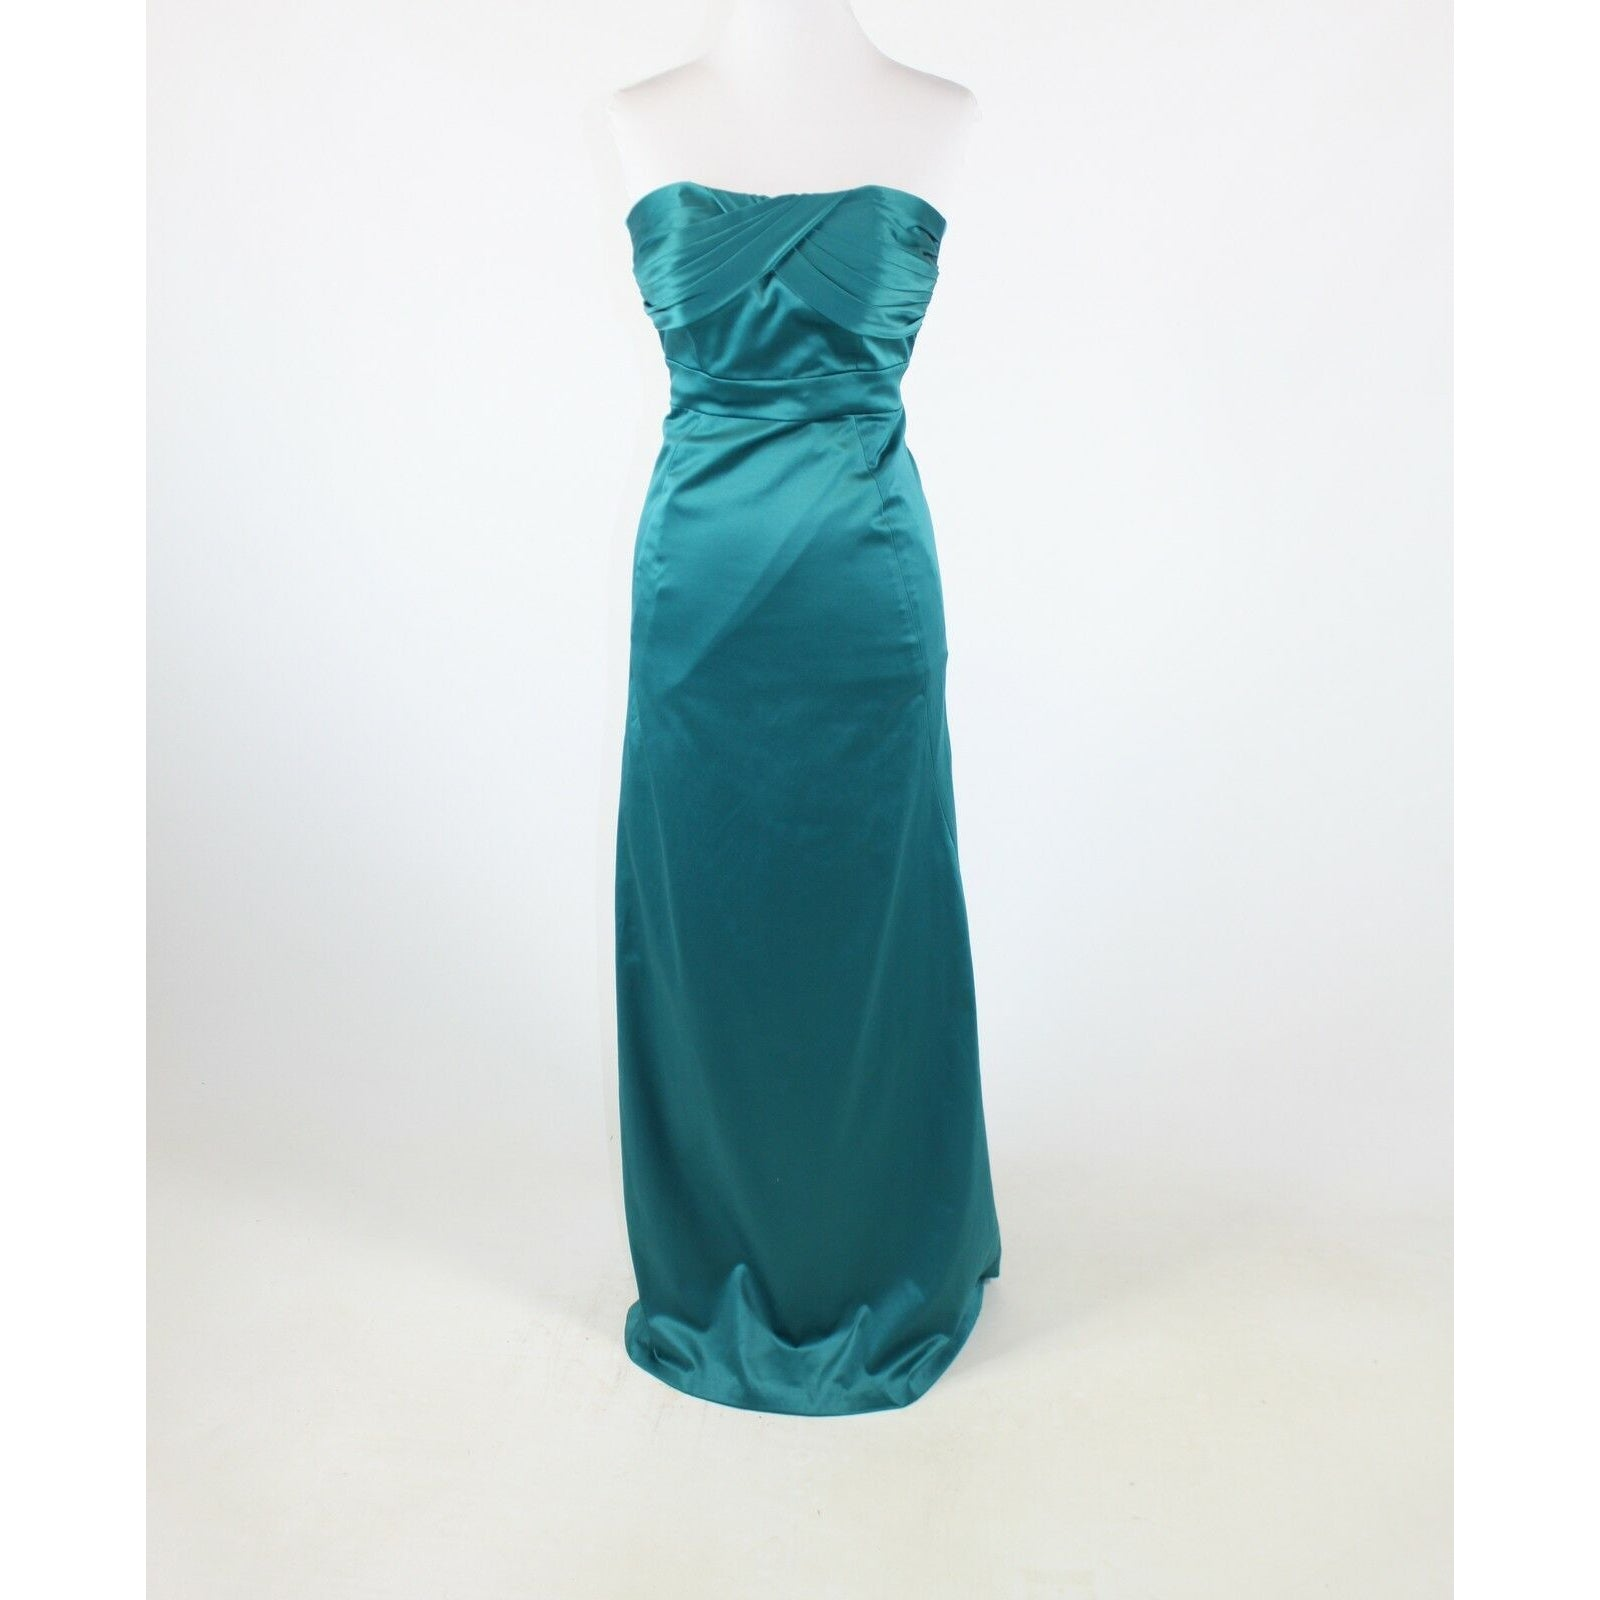 Teal green stretch BCBGENERATION strapless sweetheart ball gown 2